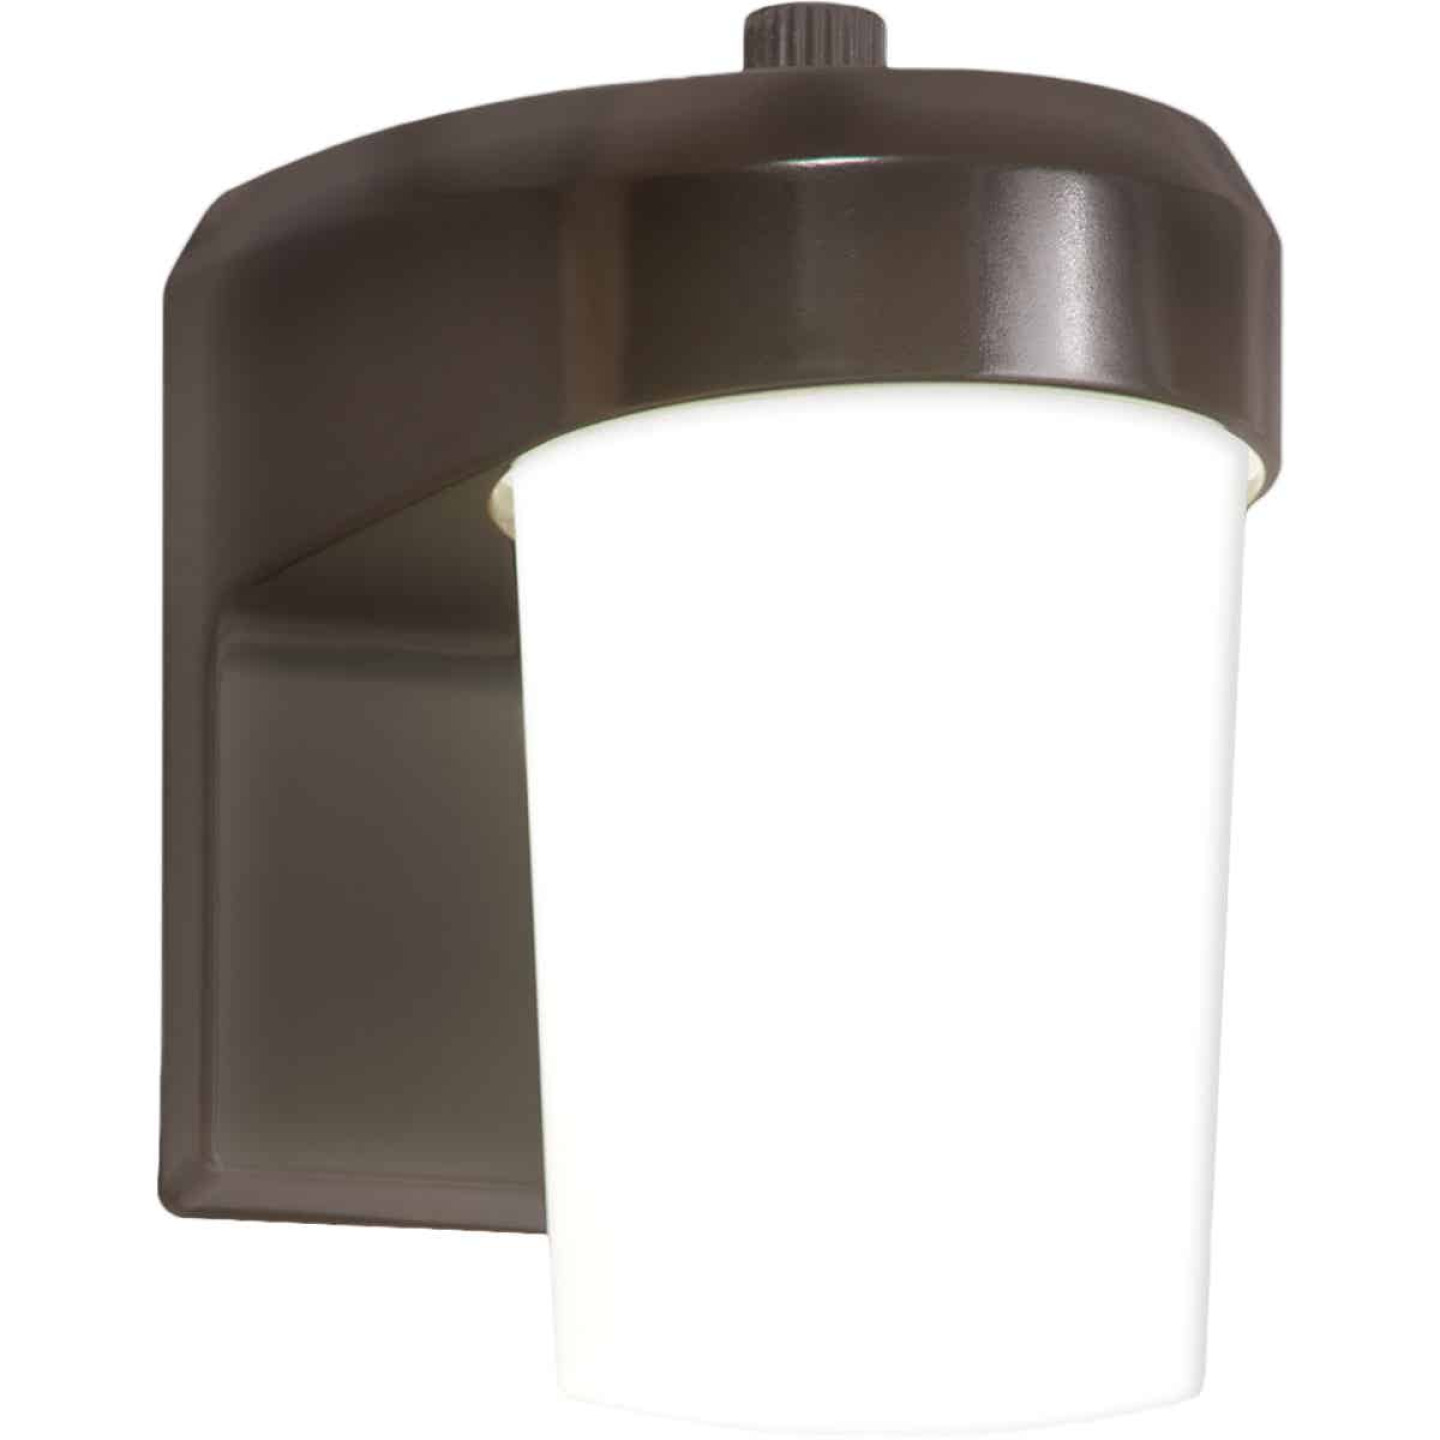 Halo Bronze Dusk To Dawn LED Outdoor Area Light Fixture Image 1